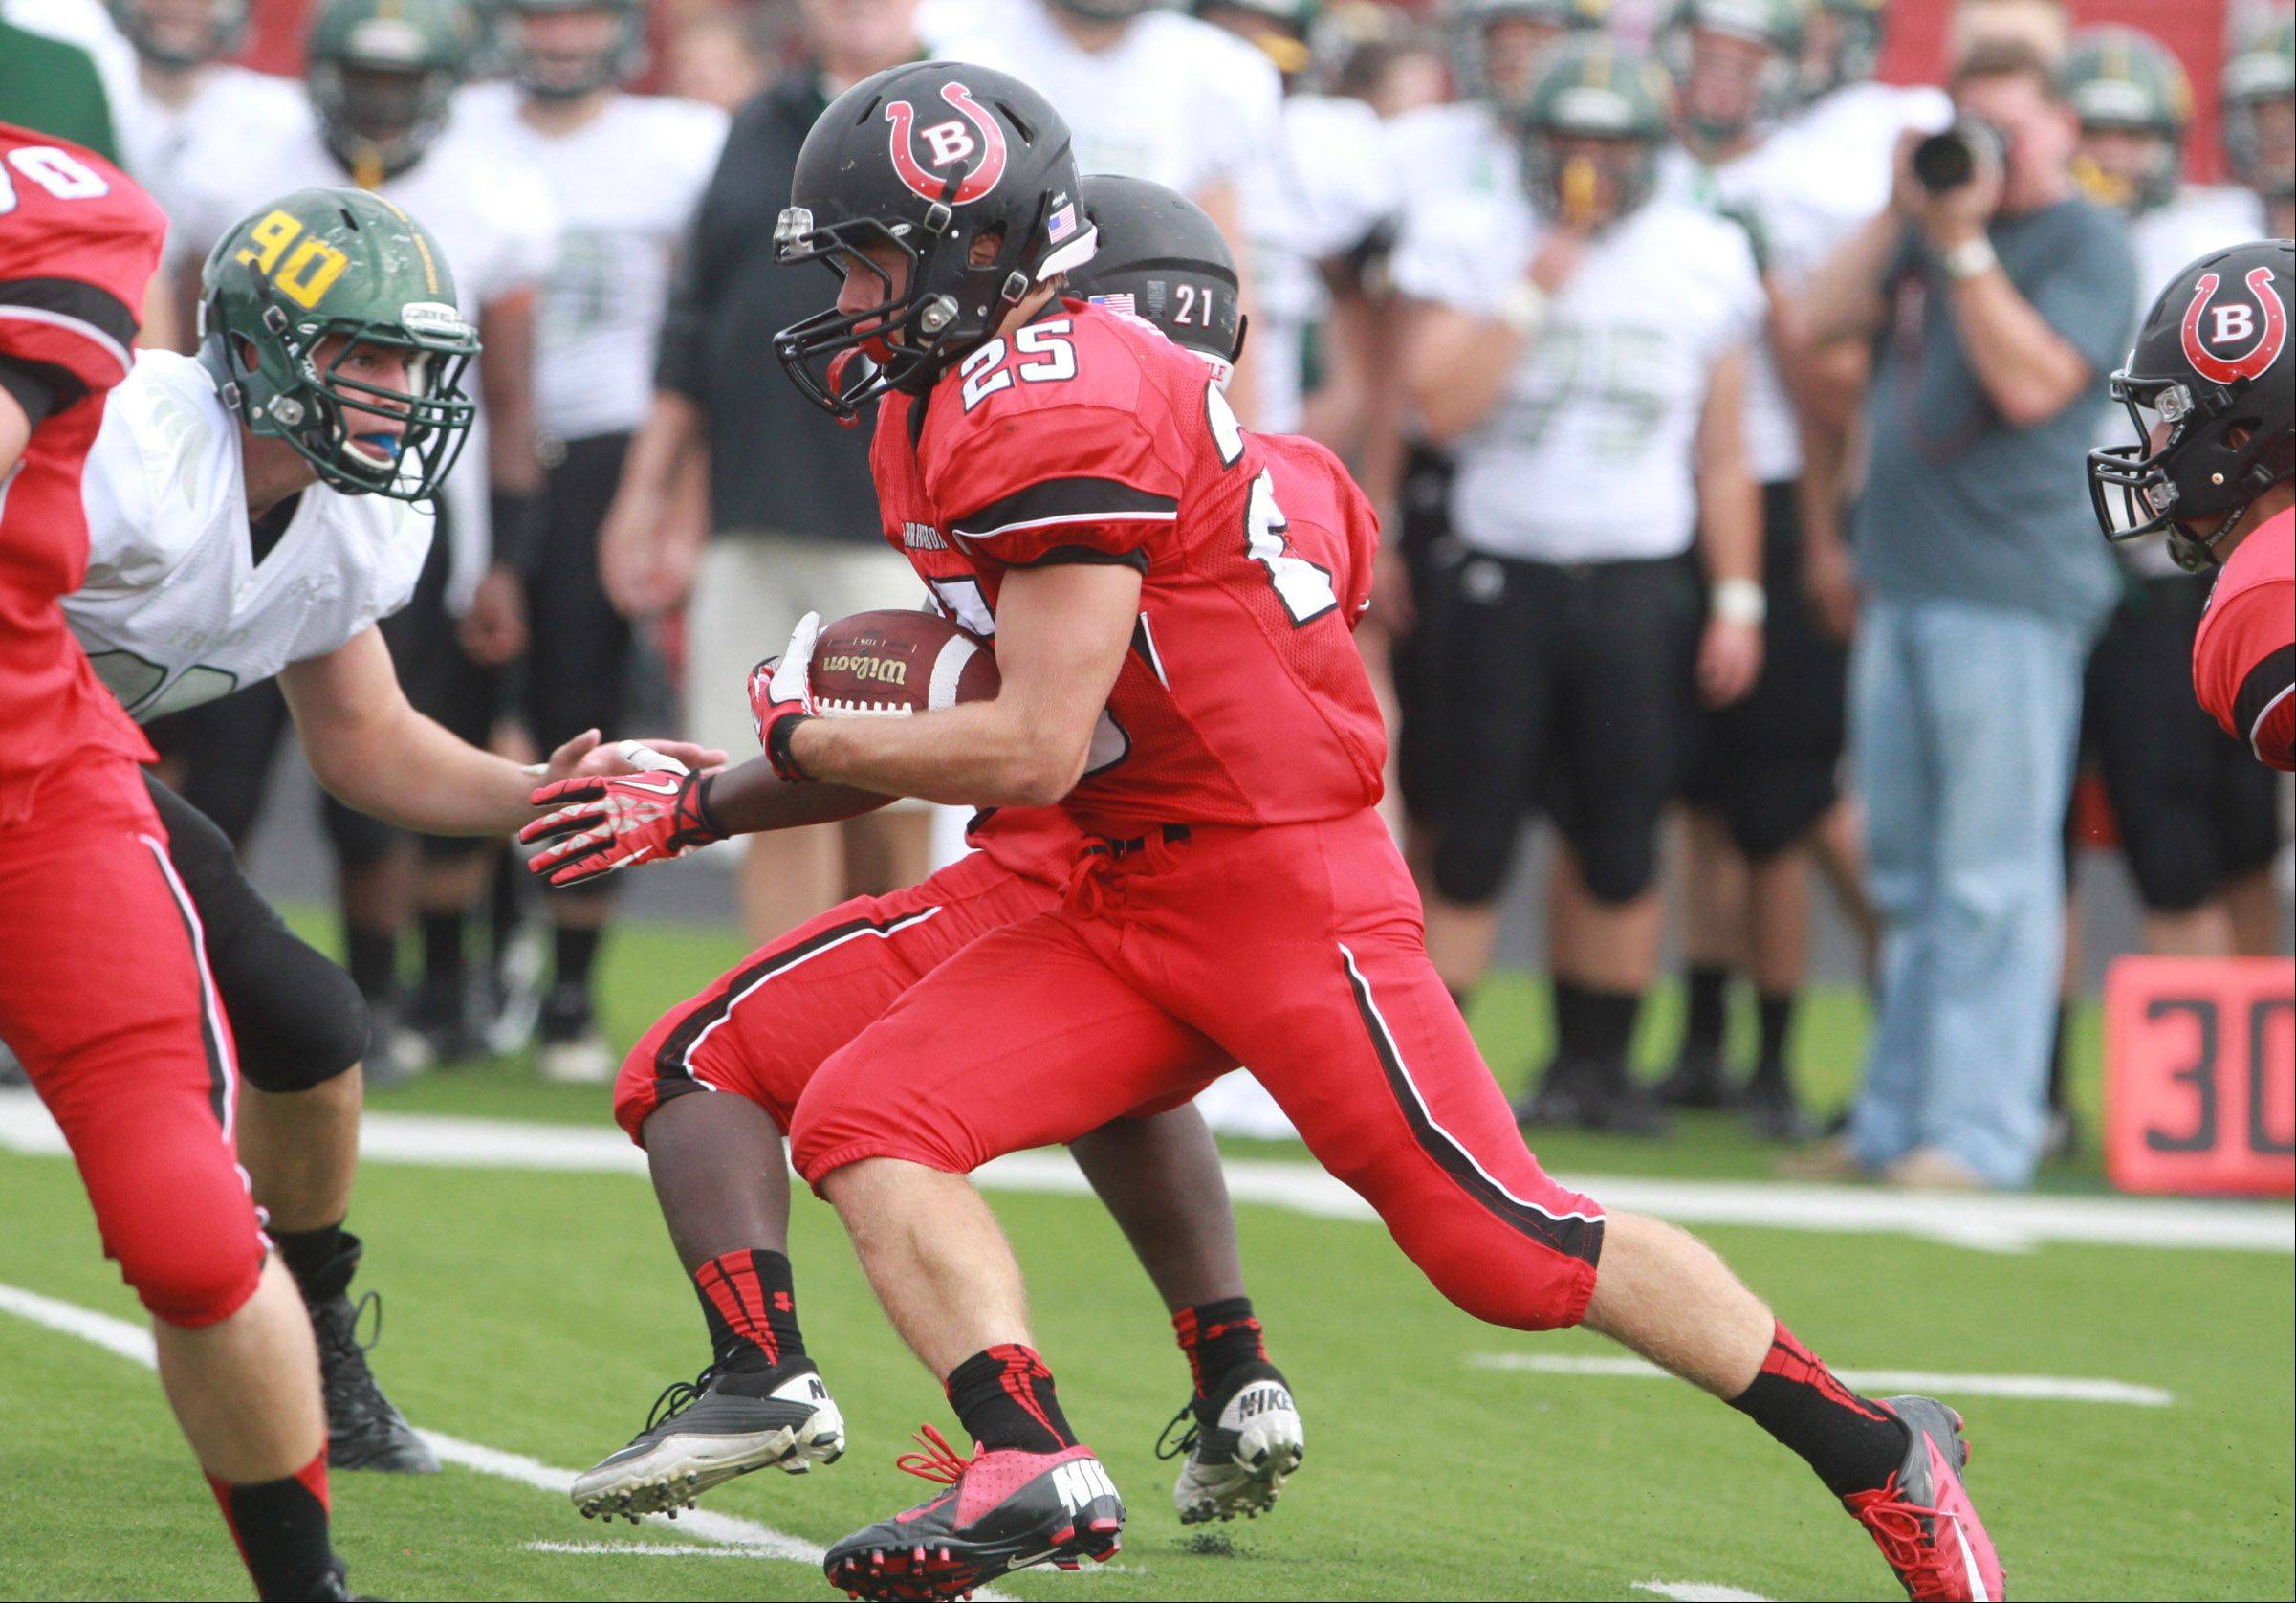 Week -6- Photos from the Barrington vs. Fremd football game on Saturday,October 5th in Barrington.